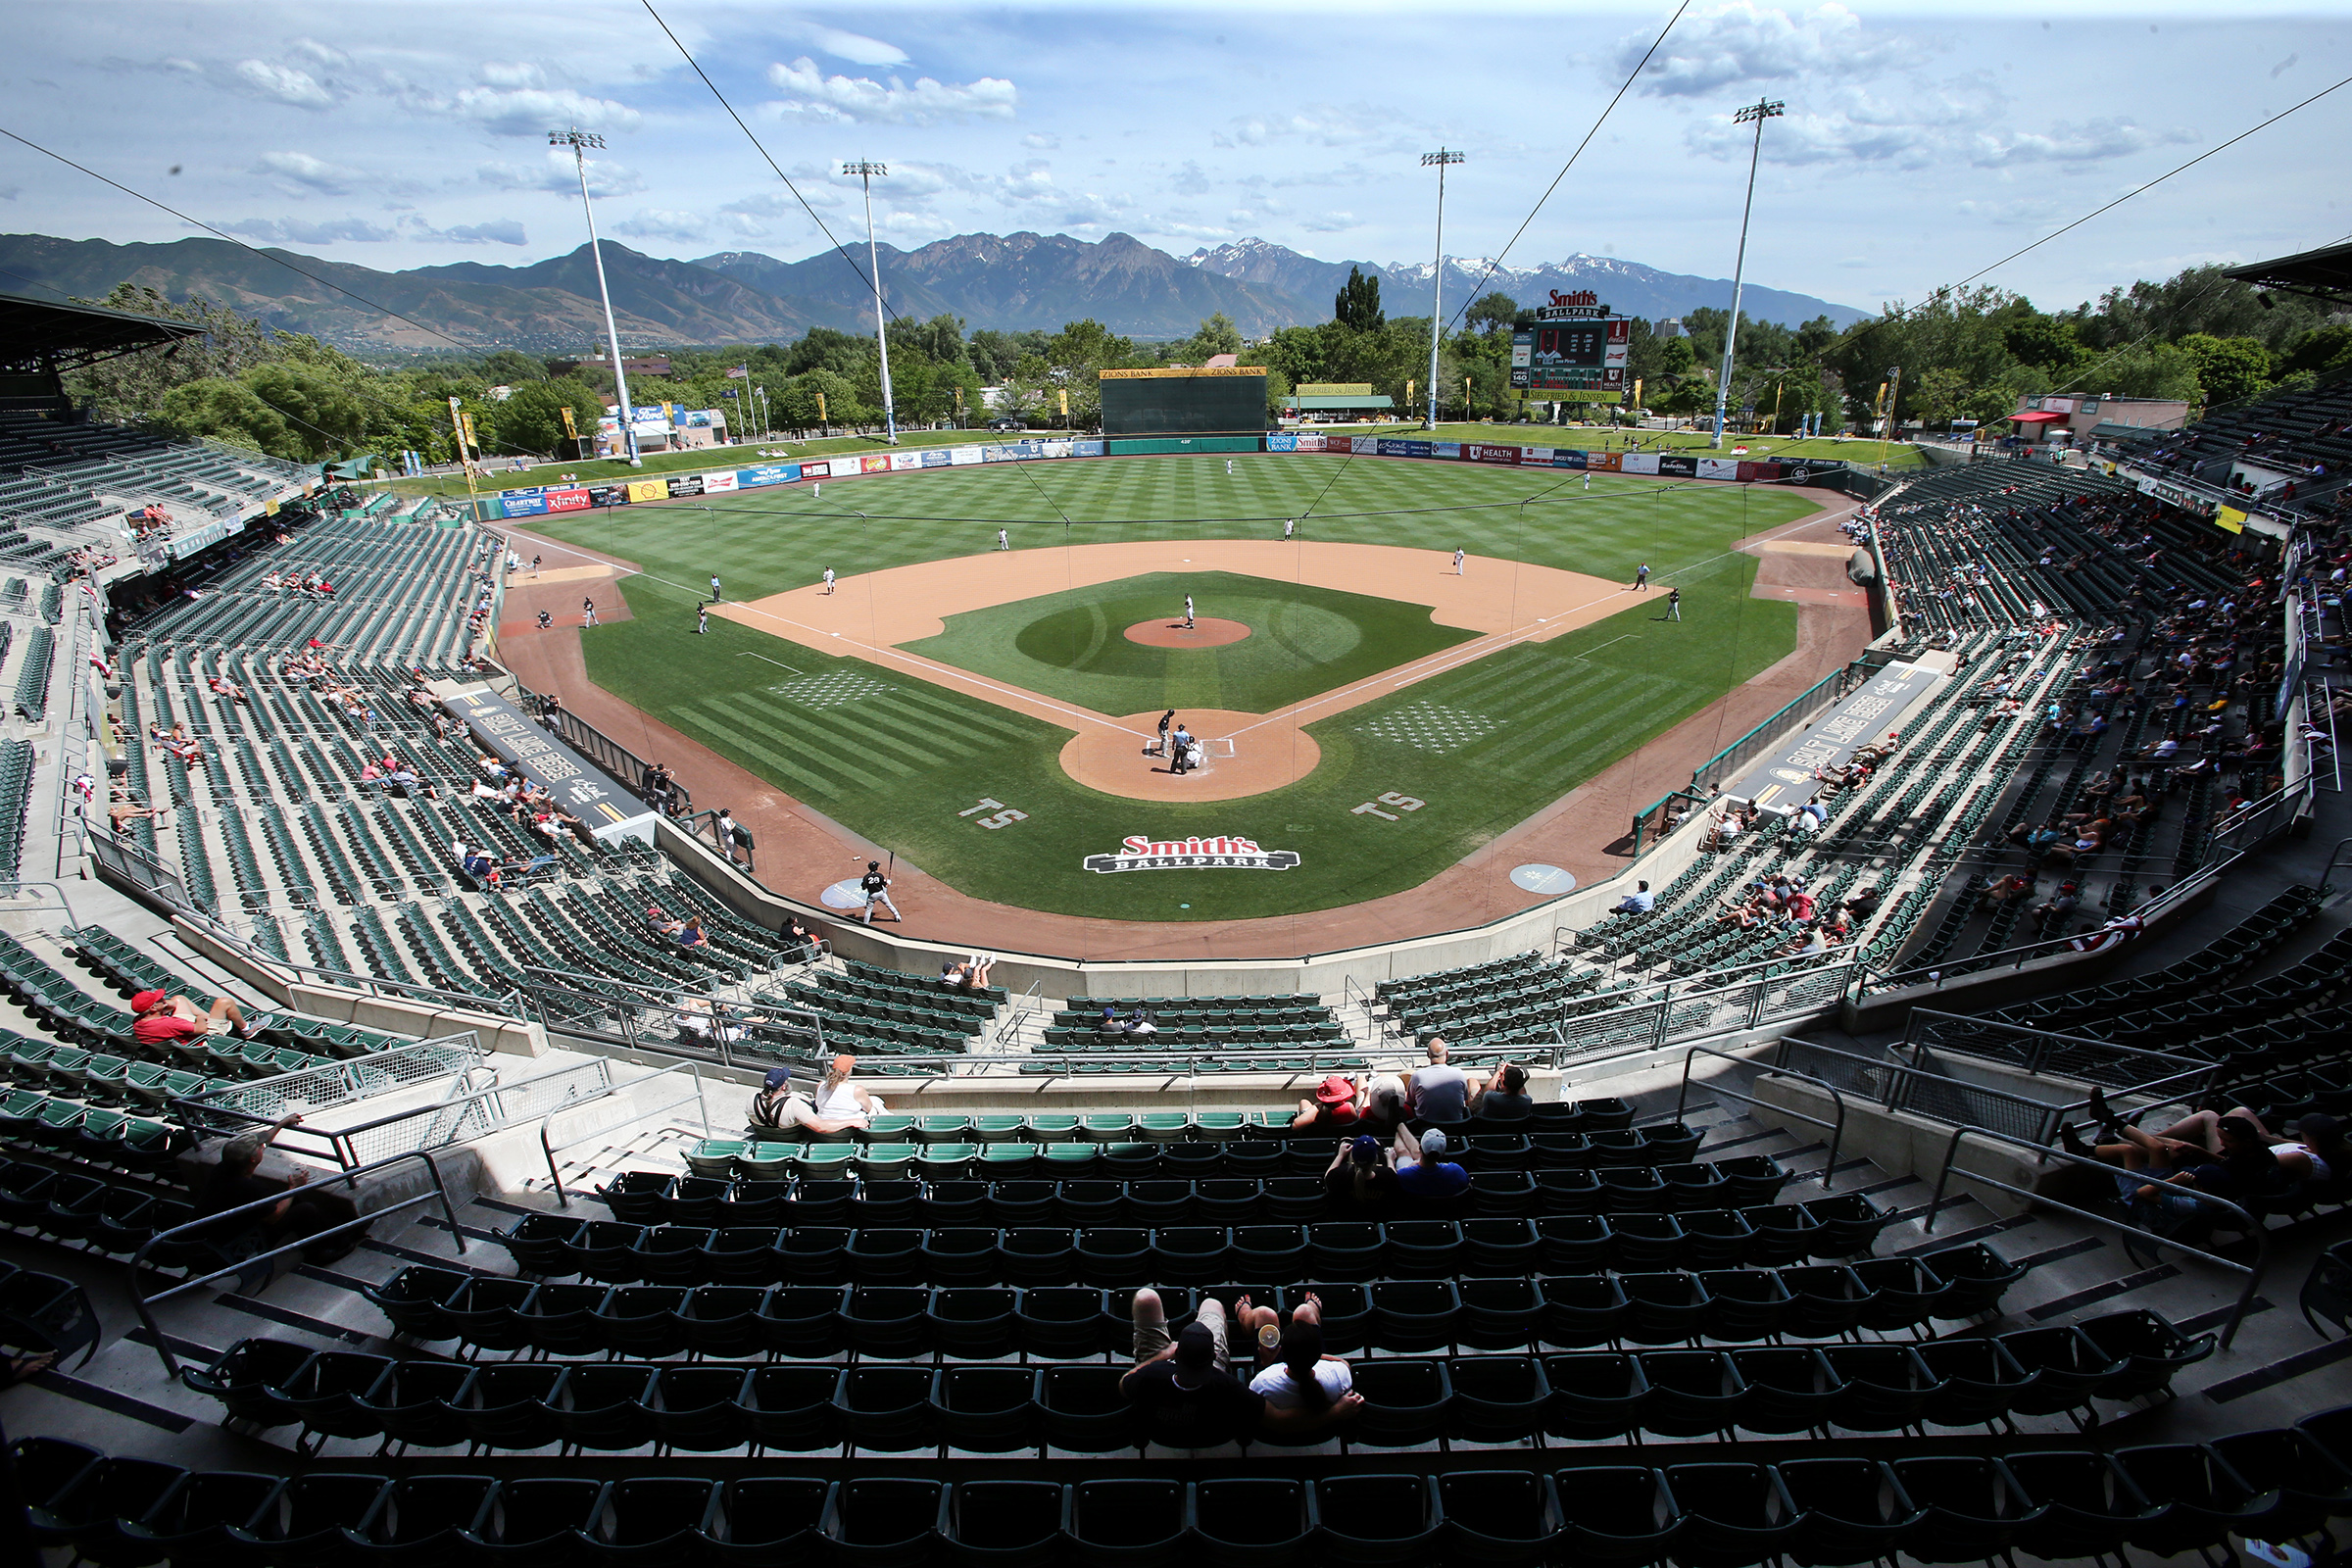 Bees and the Chihuahuas play a Smith's Ballpark in Salt Lake City on Sunday, July 7, 2019. Chihuahuas won 9-2.